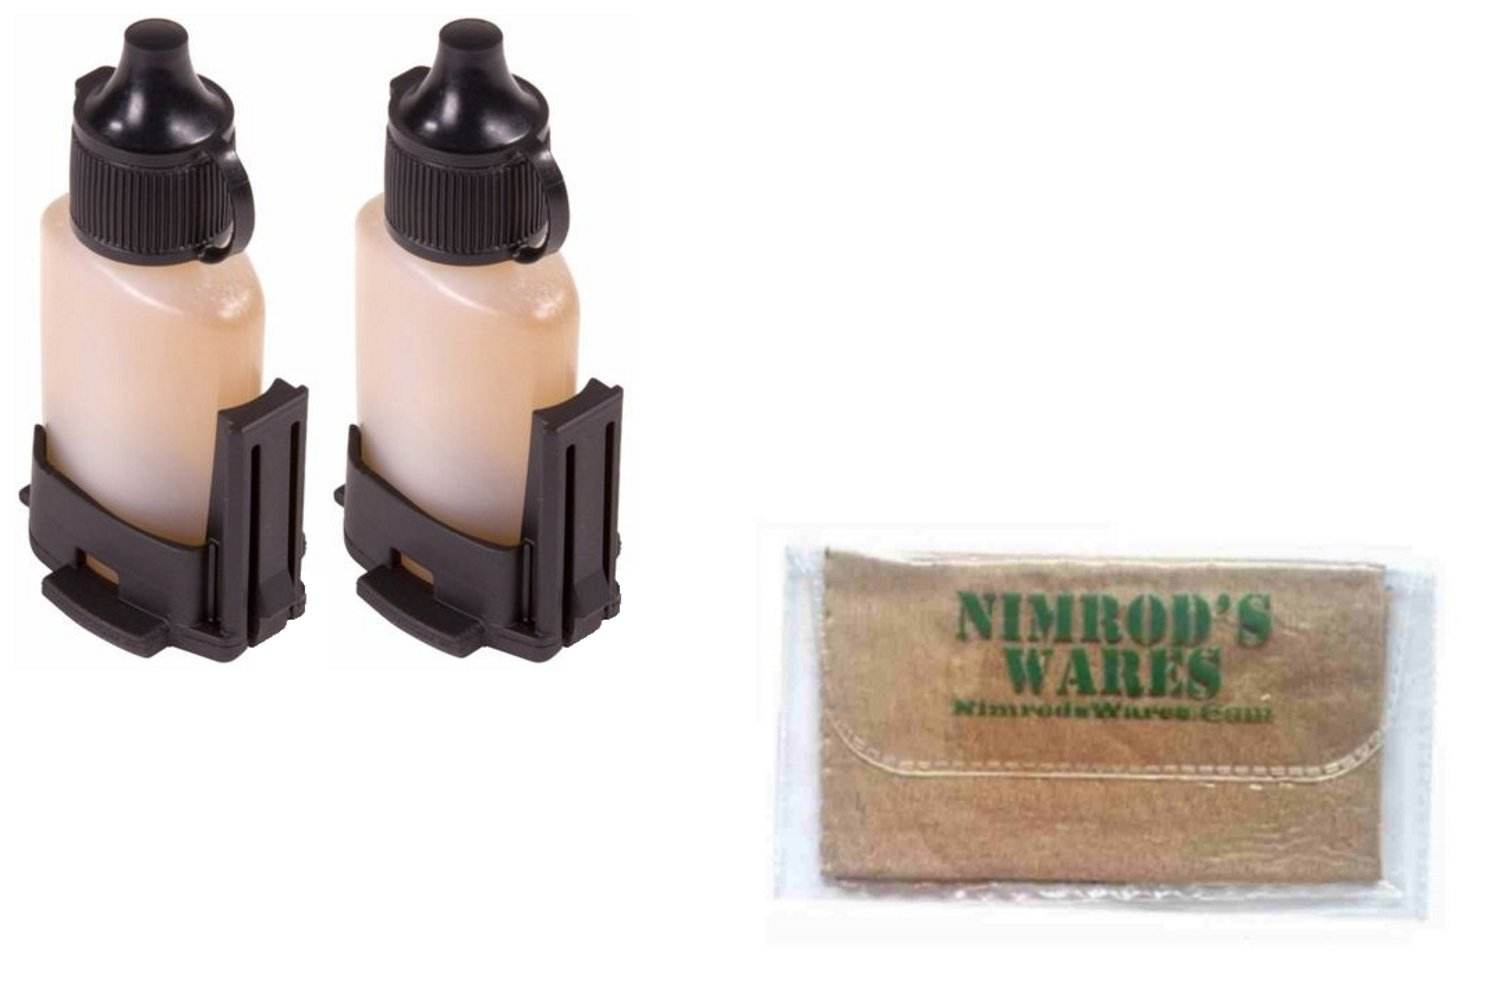 Magpul 2-Pack Grip Cores for 1/2 oz Lubrication Bottle MAG059-BLK + Nimrod's Wares Microfiber Cloth by Magpul